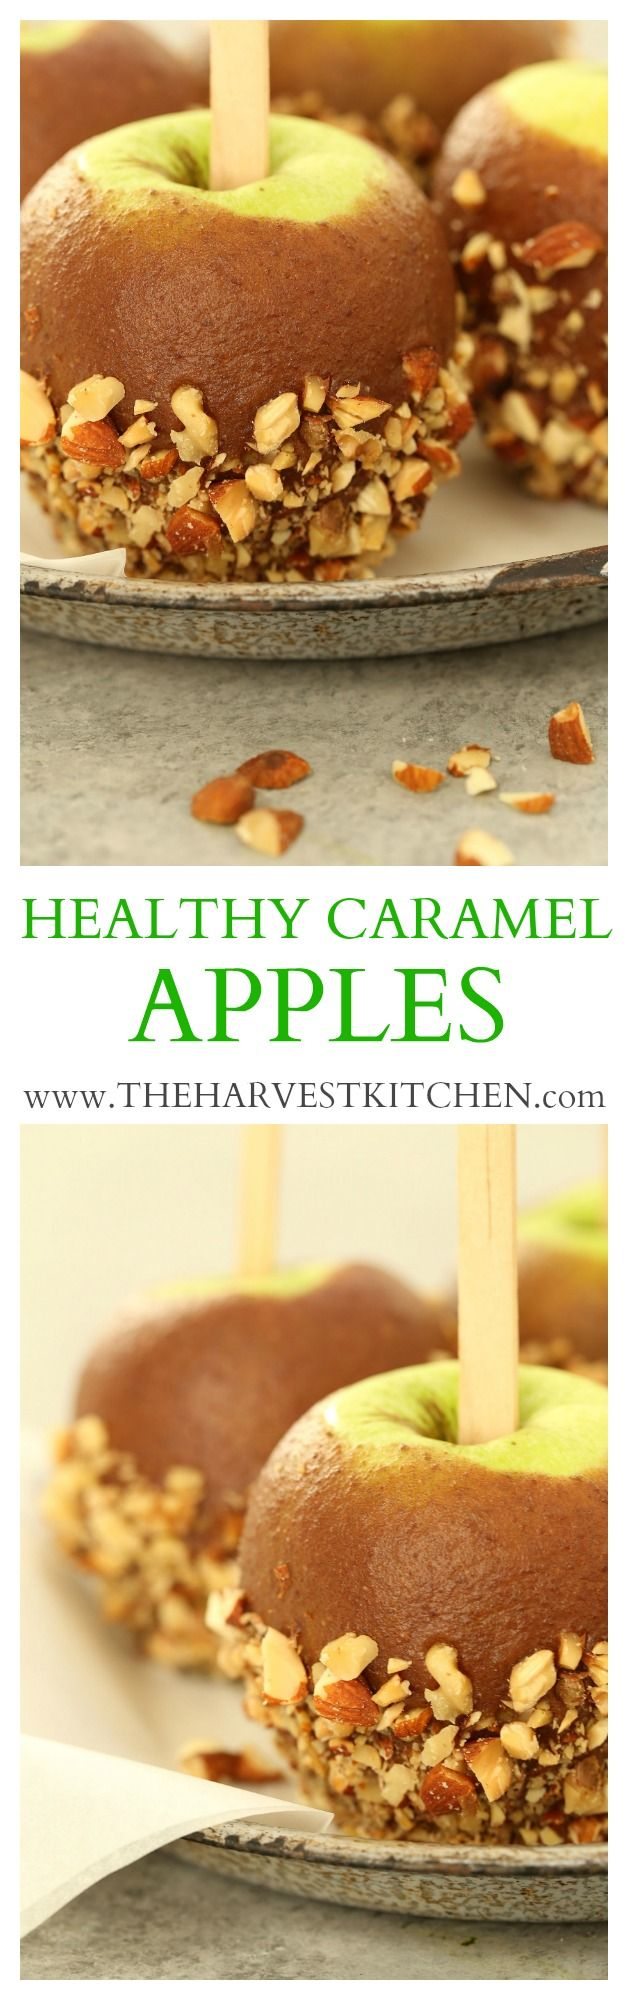 The caramel sauce for these Healthy Caramel Apples is made with dates, pure maple syrup, a wee bit of almond milk, almond butter and coconut oil, and a splash of vanilla. These festive apples are incredibly easy to make and they make a delicious healthier take on a classic fall treat. @theharvestkitchen.com